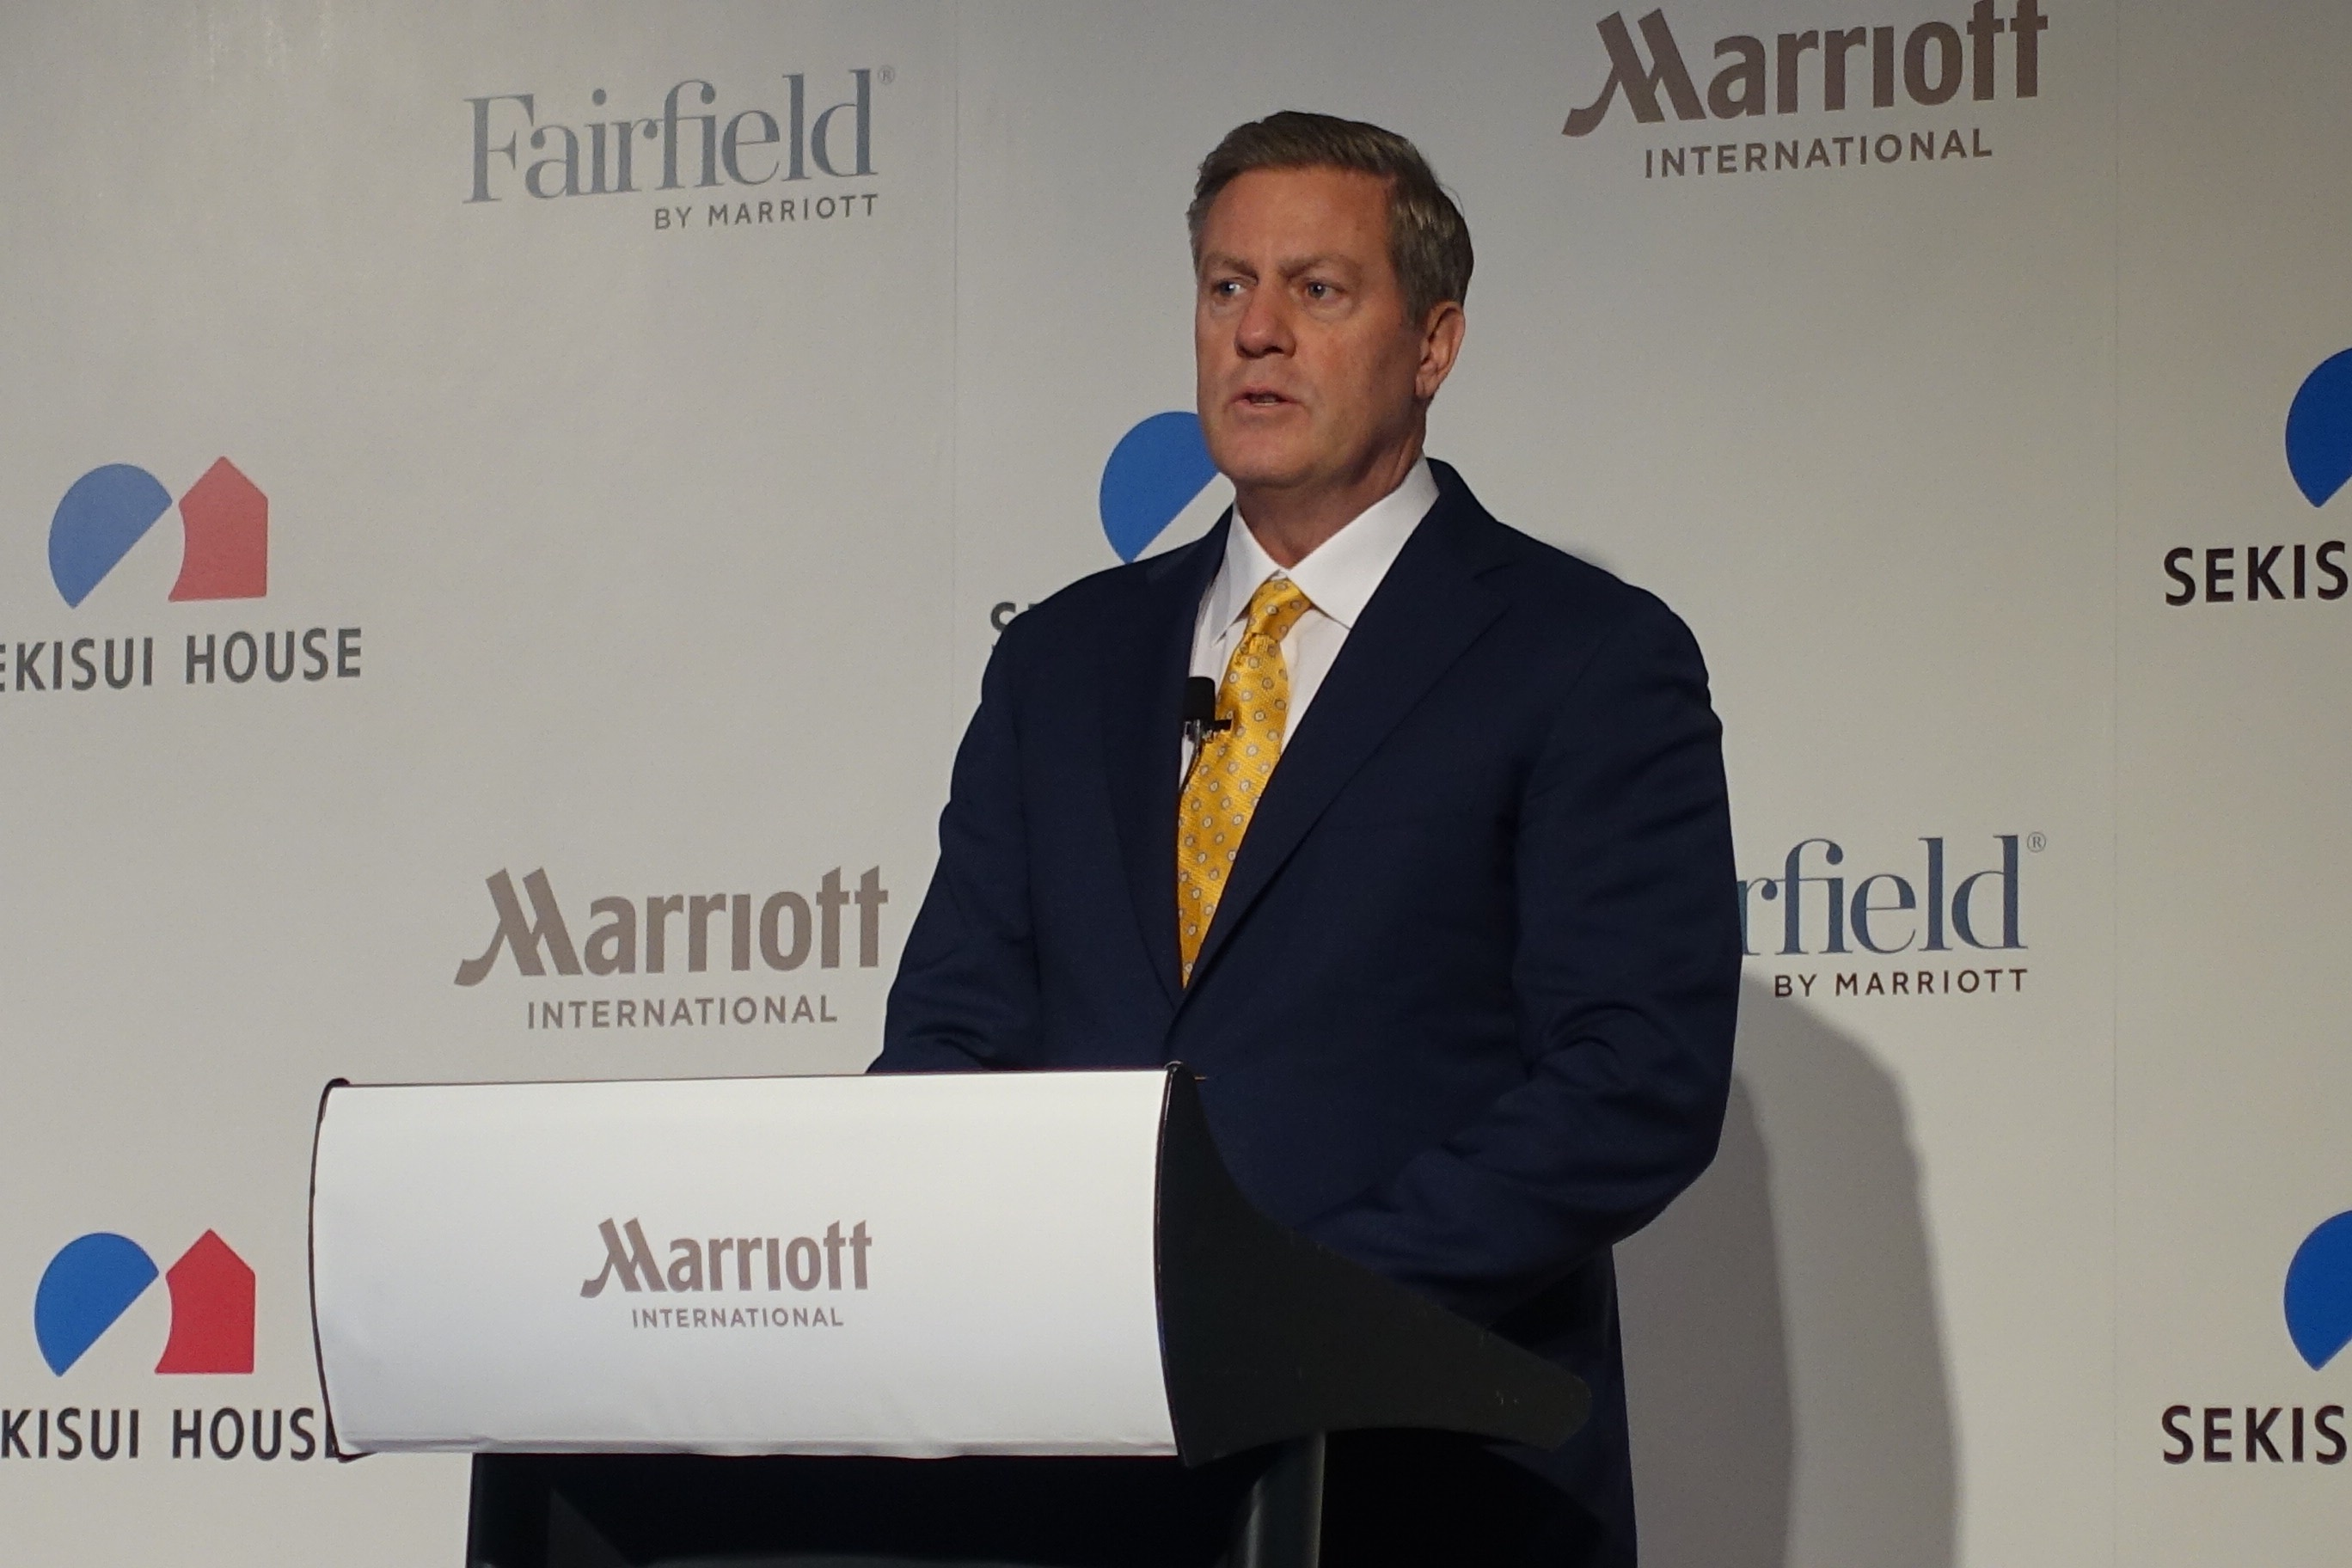 Craig Smith, Marriott International APAC President expects the project